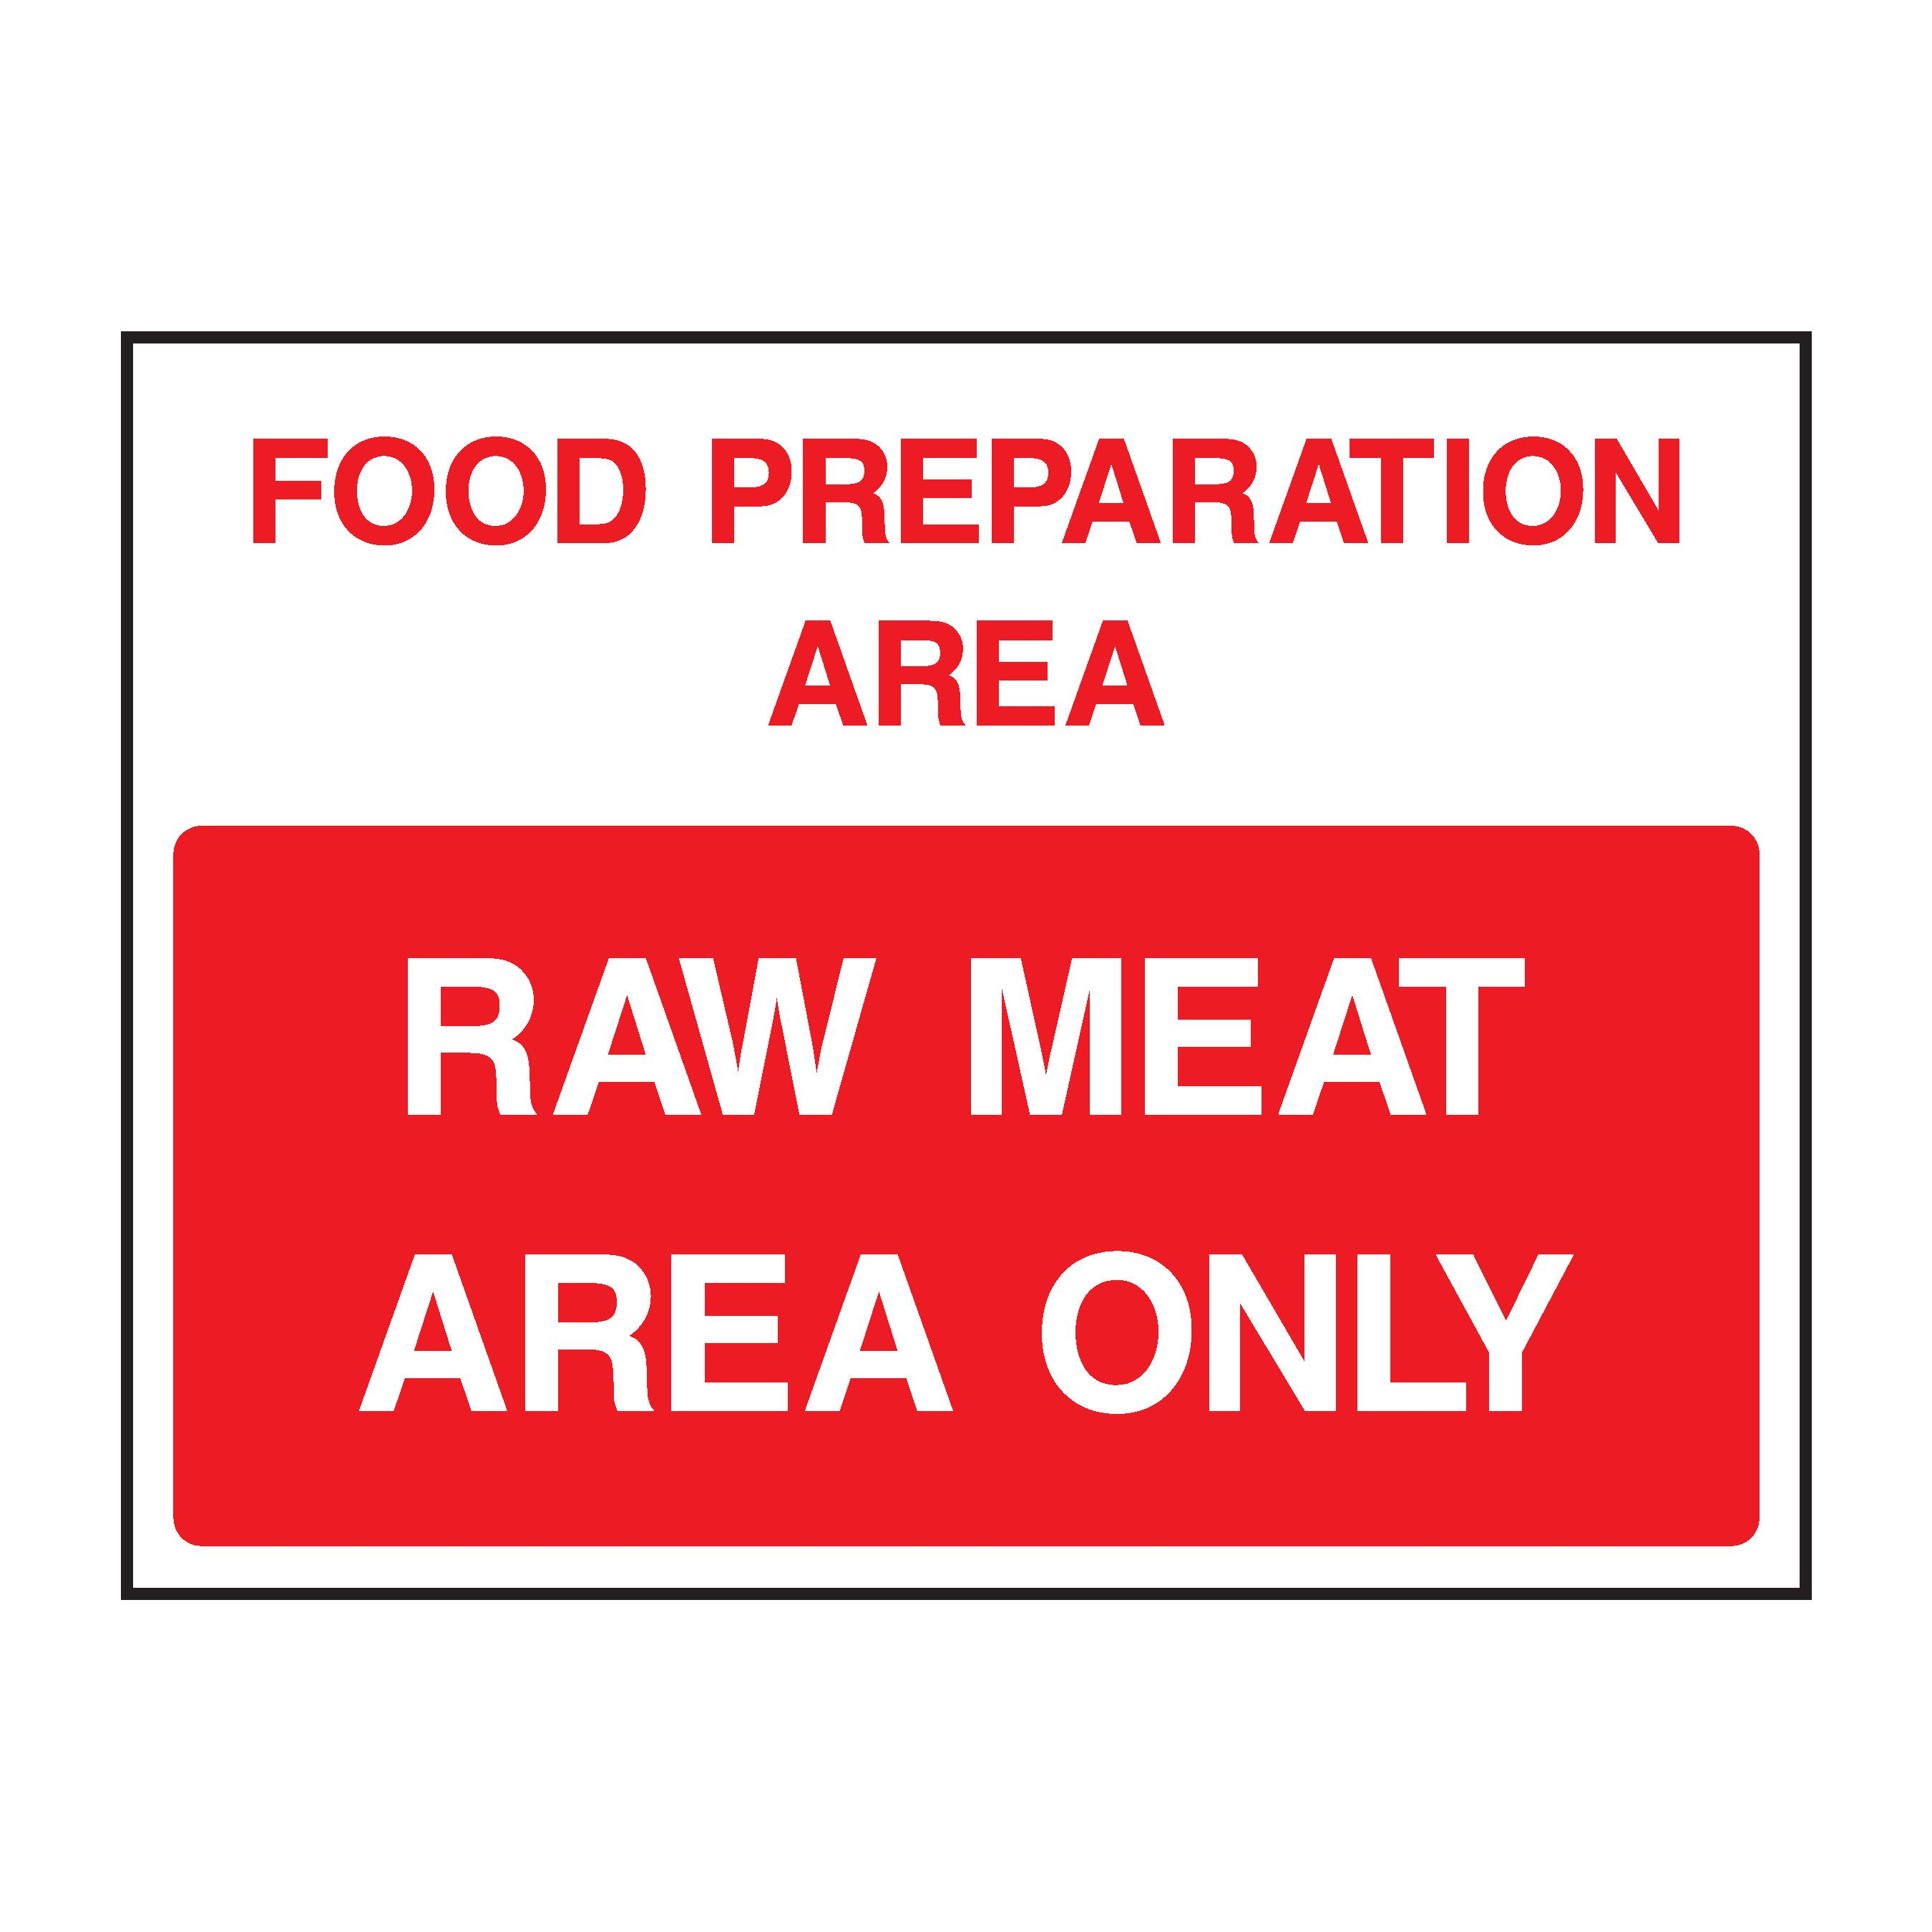 food preparation area raw meat area only fleet dynamic